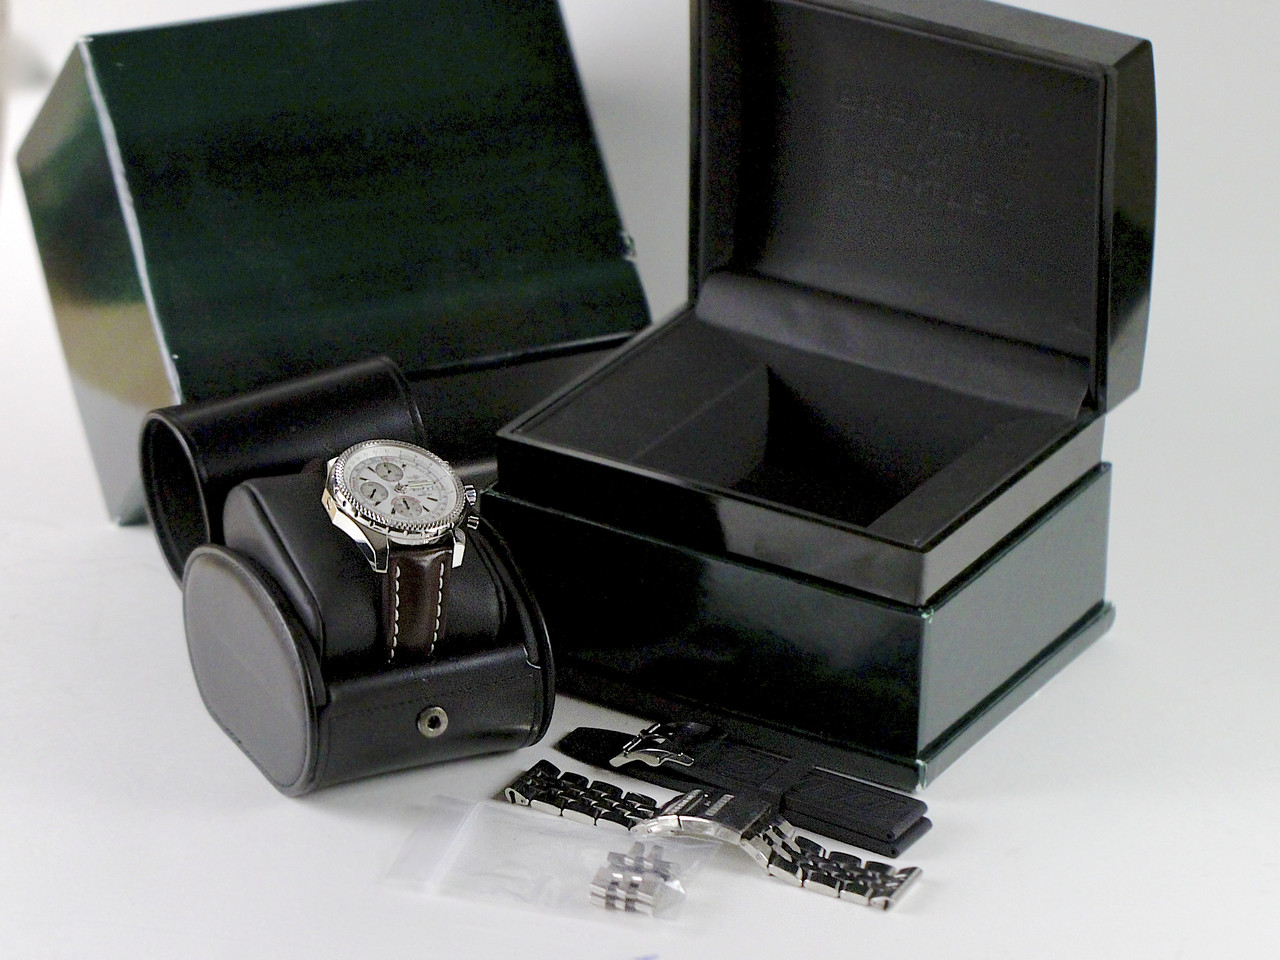 Complete Box & Papers, tags - For sale pre-owned Breitling Watch - Breitling for Bentley GT A13362 available online www.Legendoftime.com and in store Chicago Watch Center